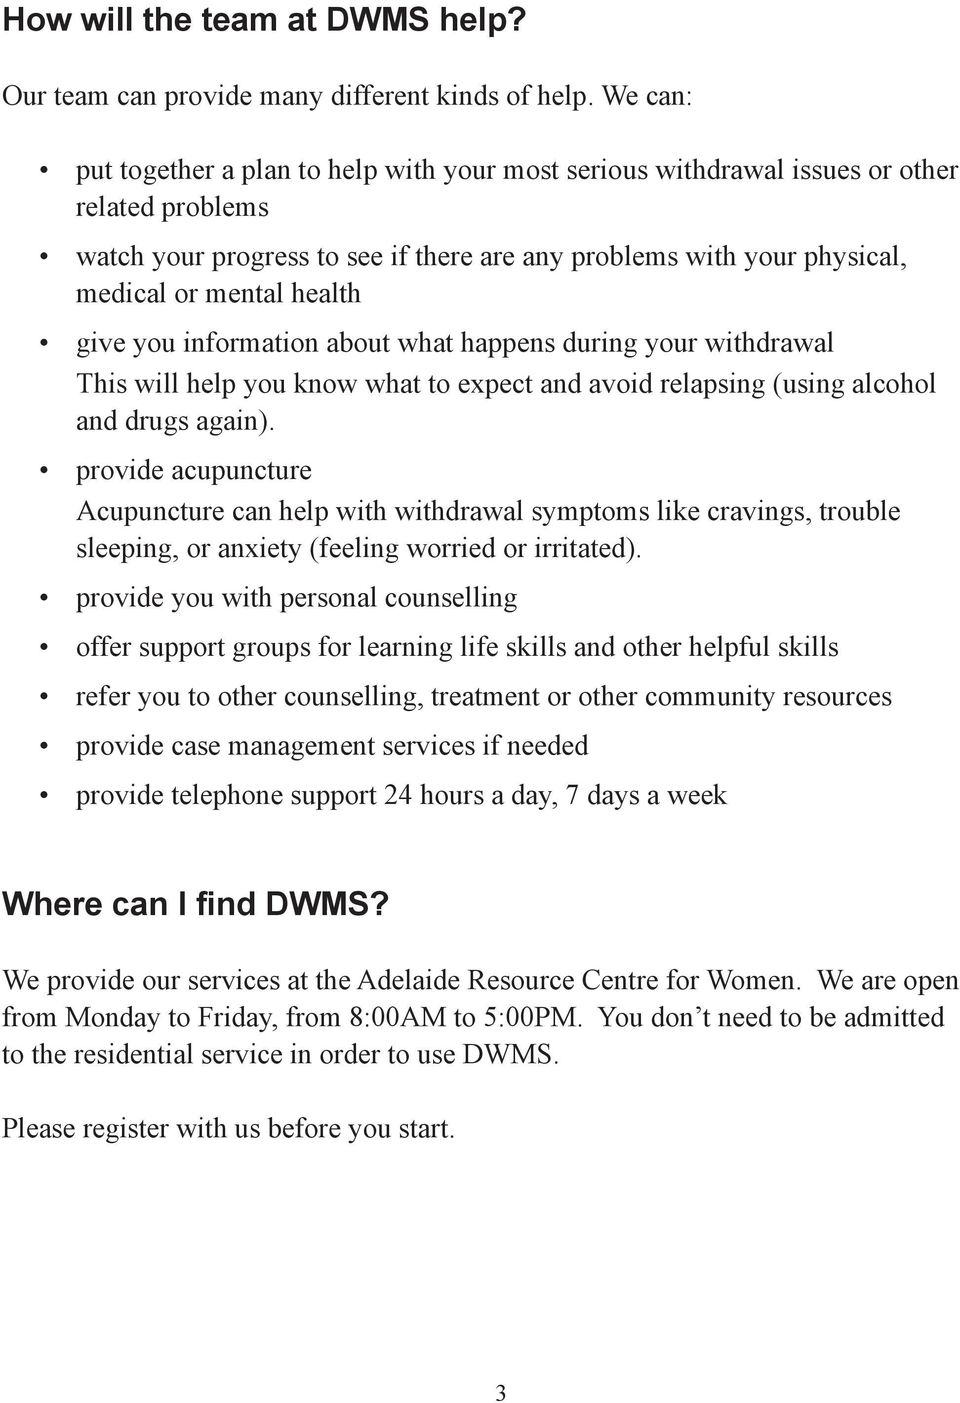 health give you information about what happens during your withdrawal This will help you know what to expect and avoid relapsing (using alcohol and drugs again).